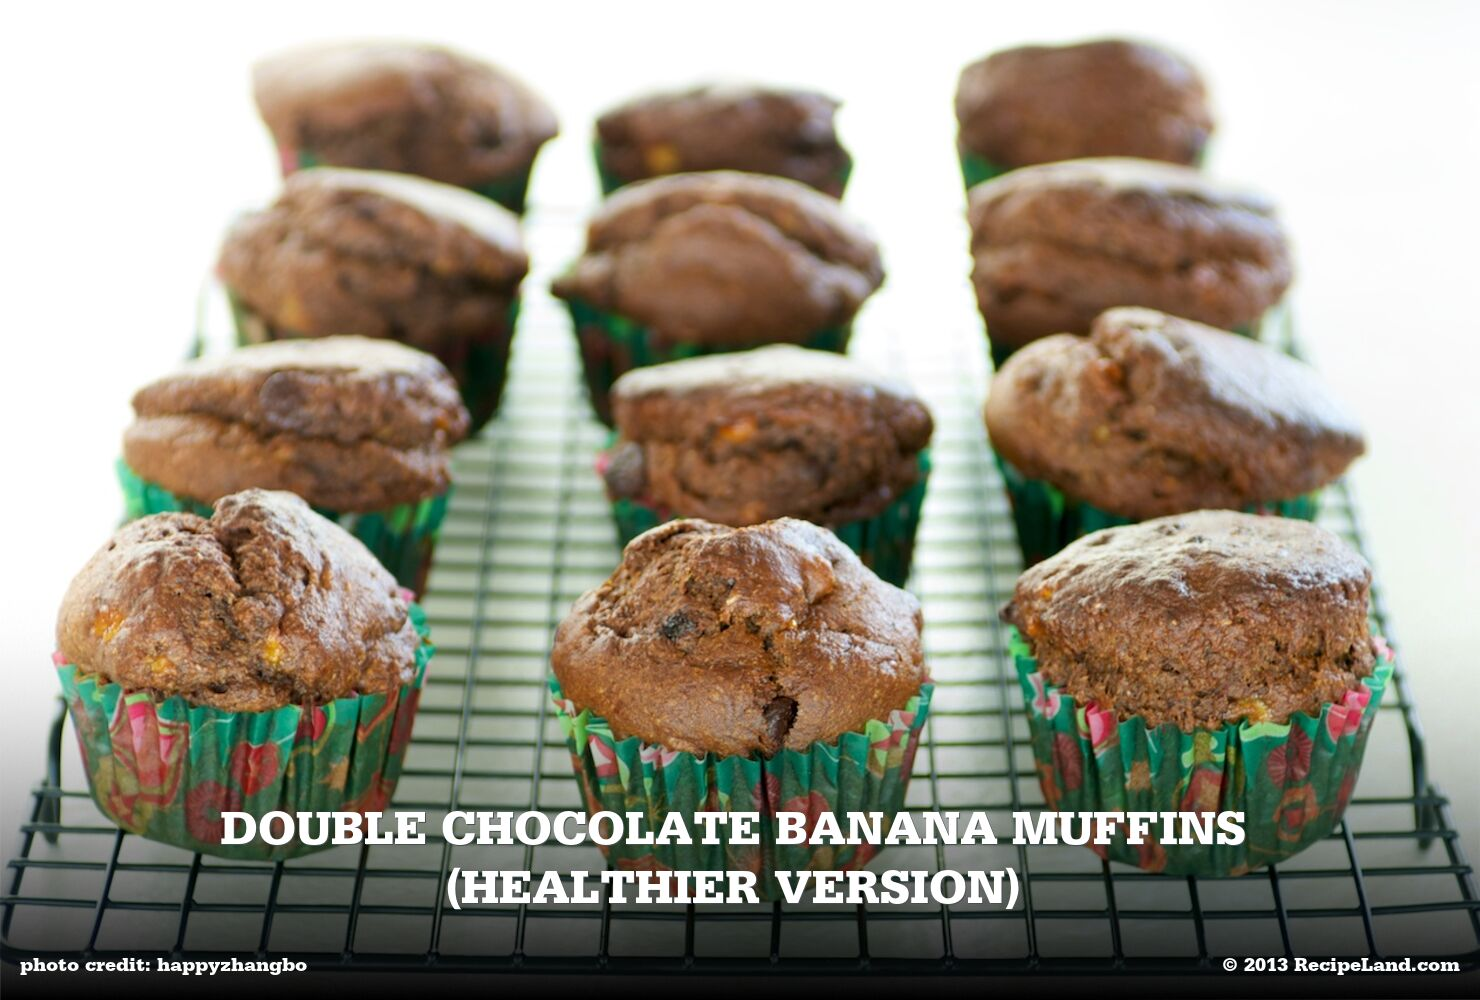 Double Chocolate Banana Muffins (Healthier Version)